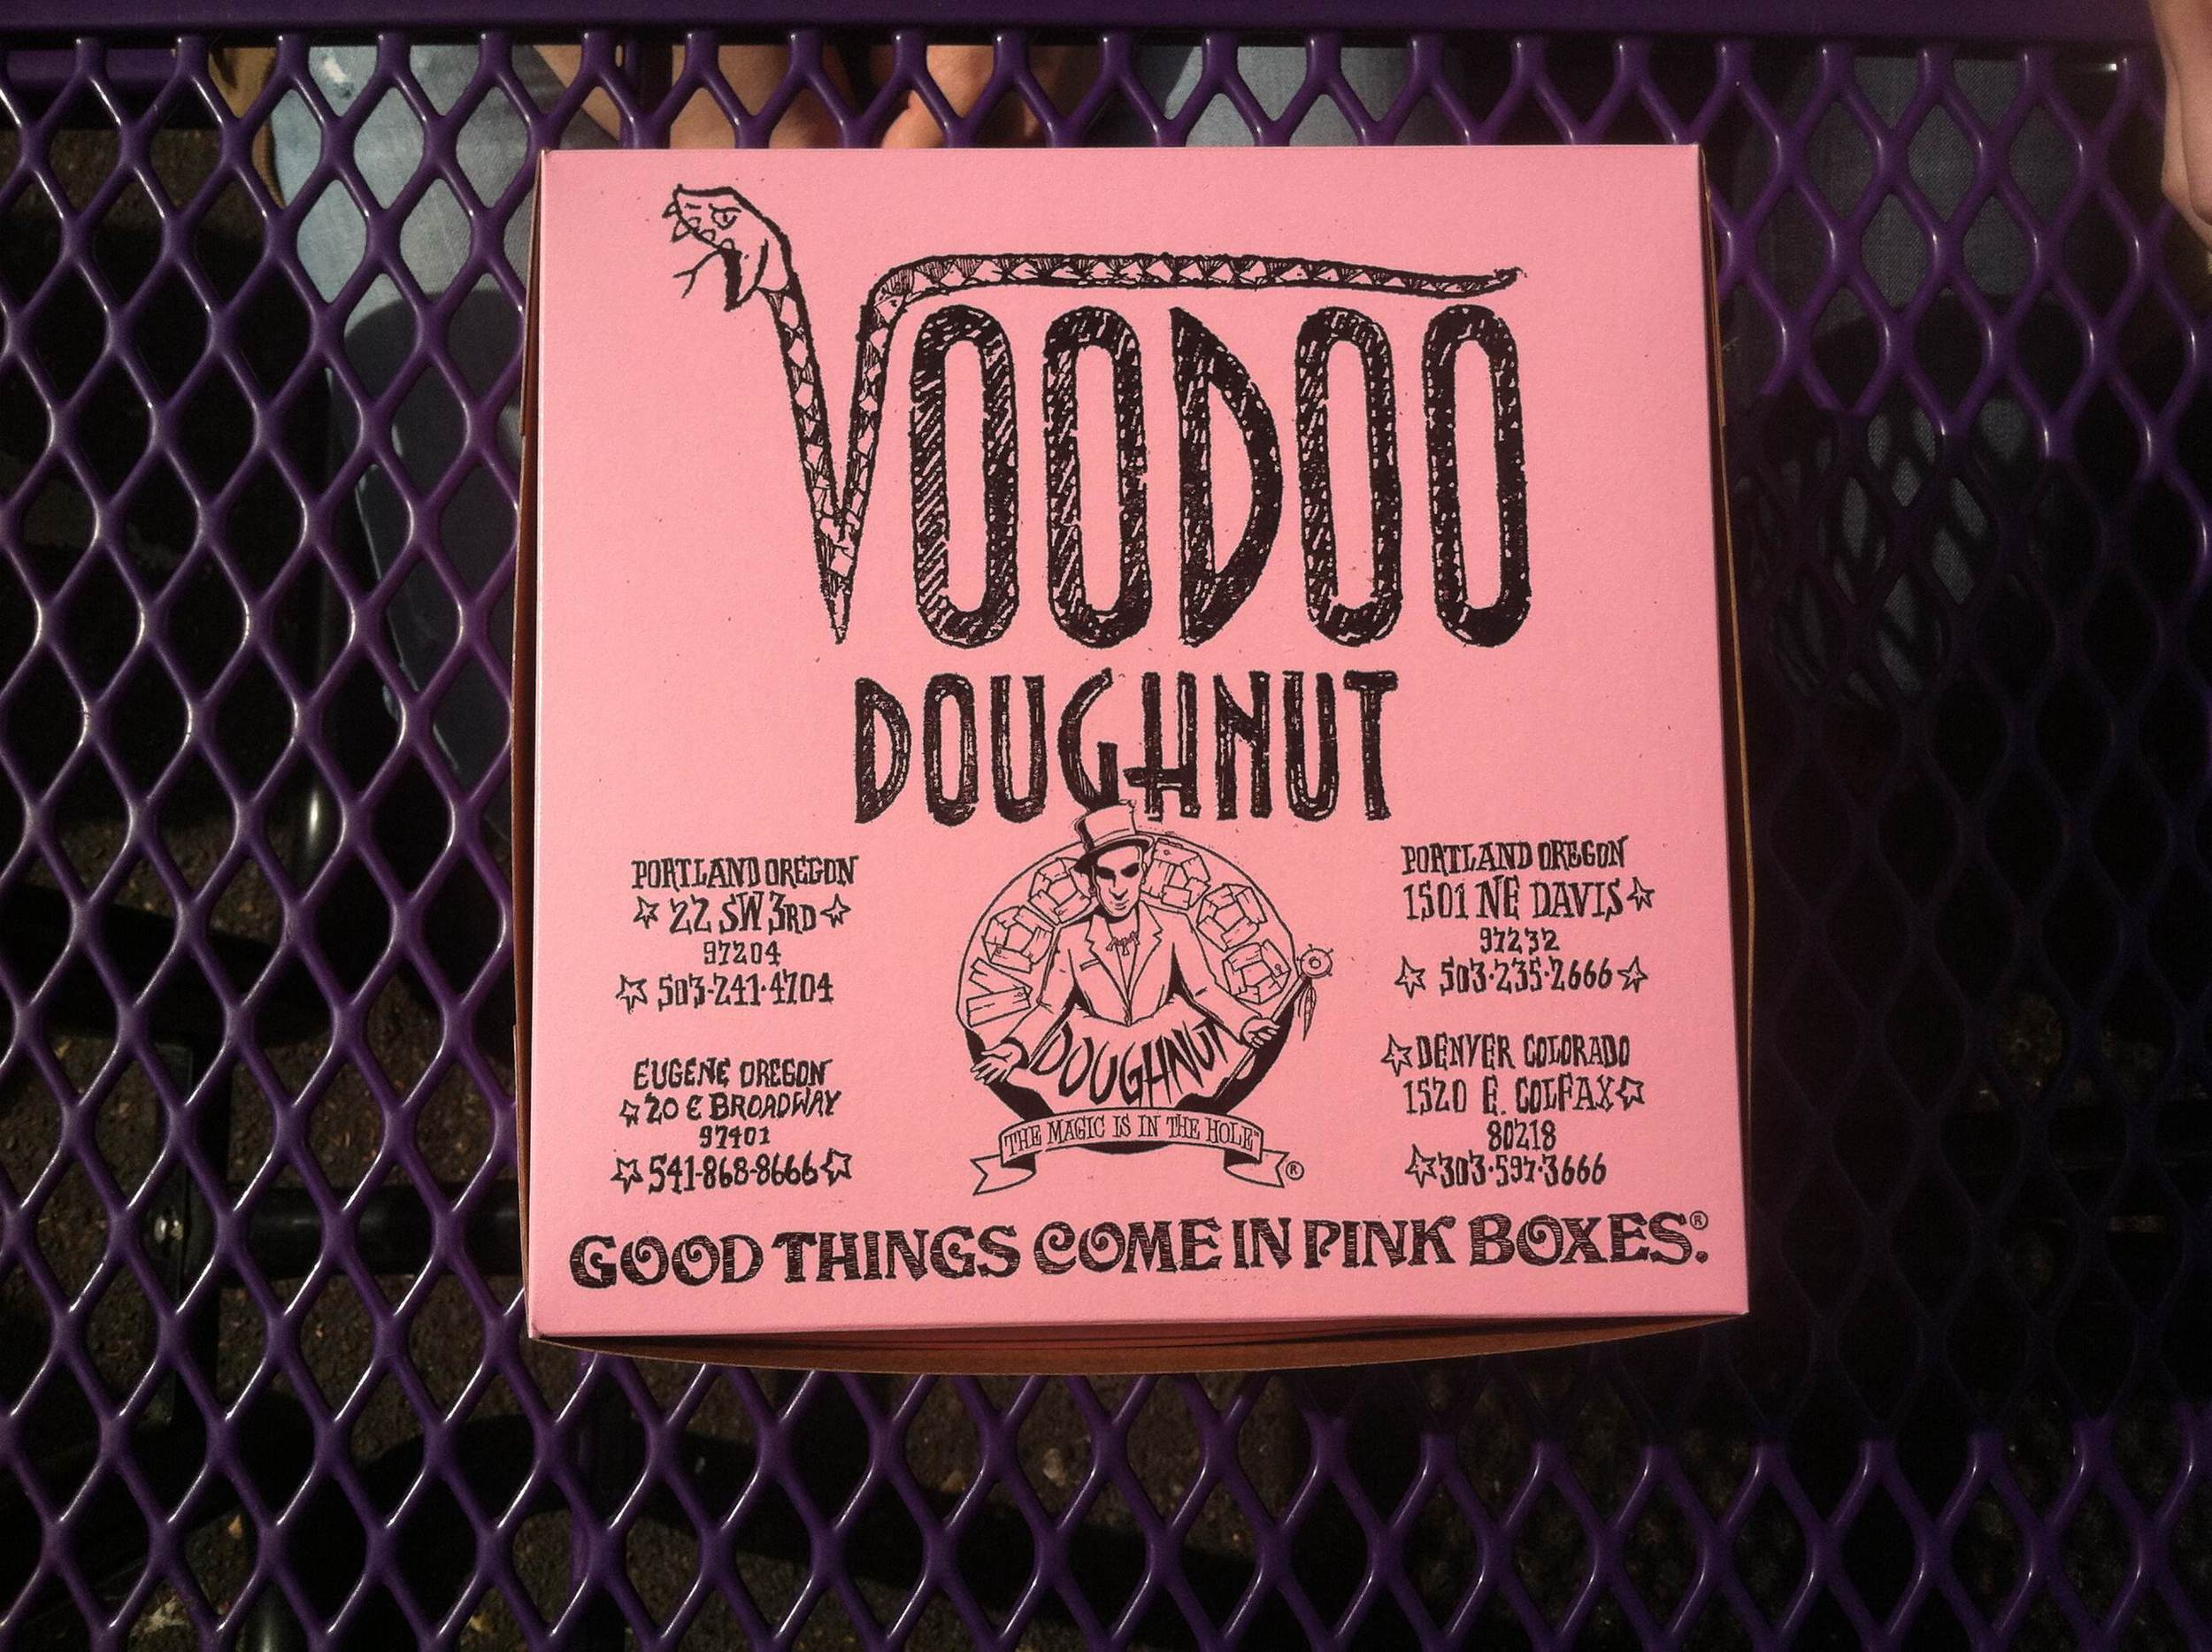 Voodoo Doughnuts in Portland, Oregon | Maria Grace Photography